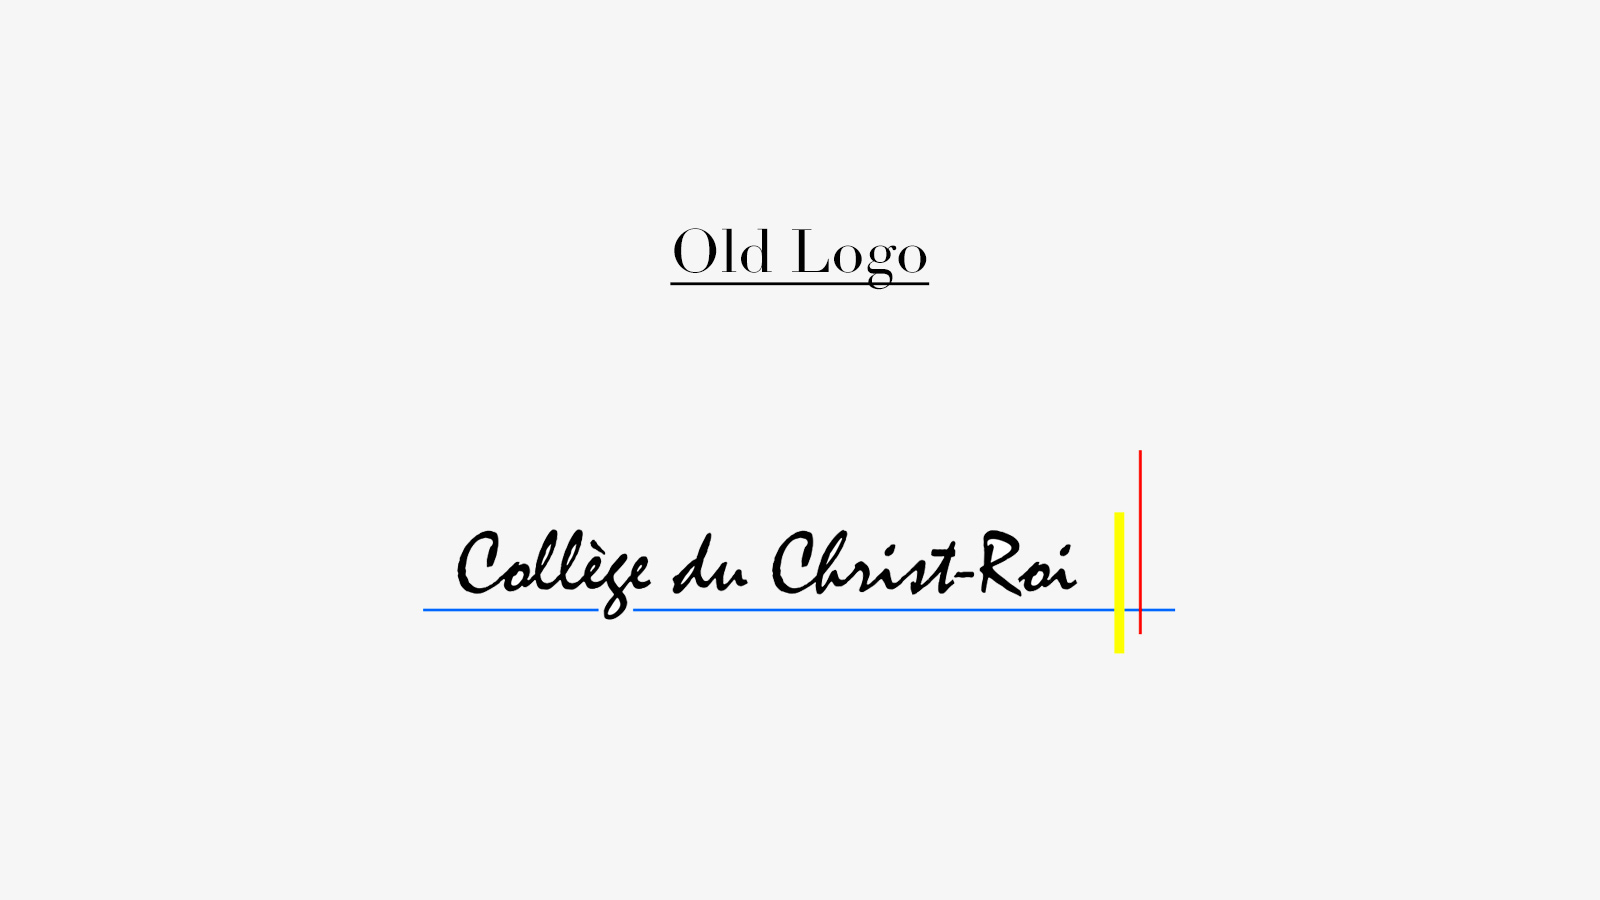 Collège du Christ - Roi Rebrand on Behance